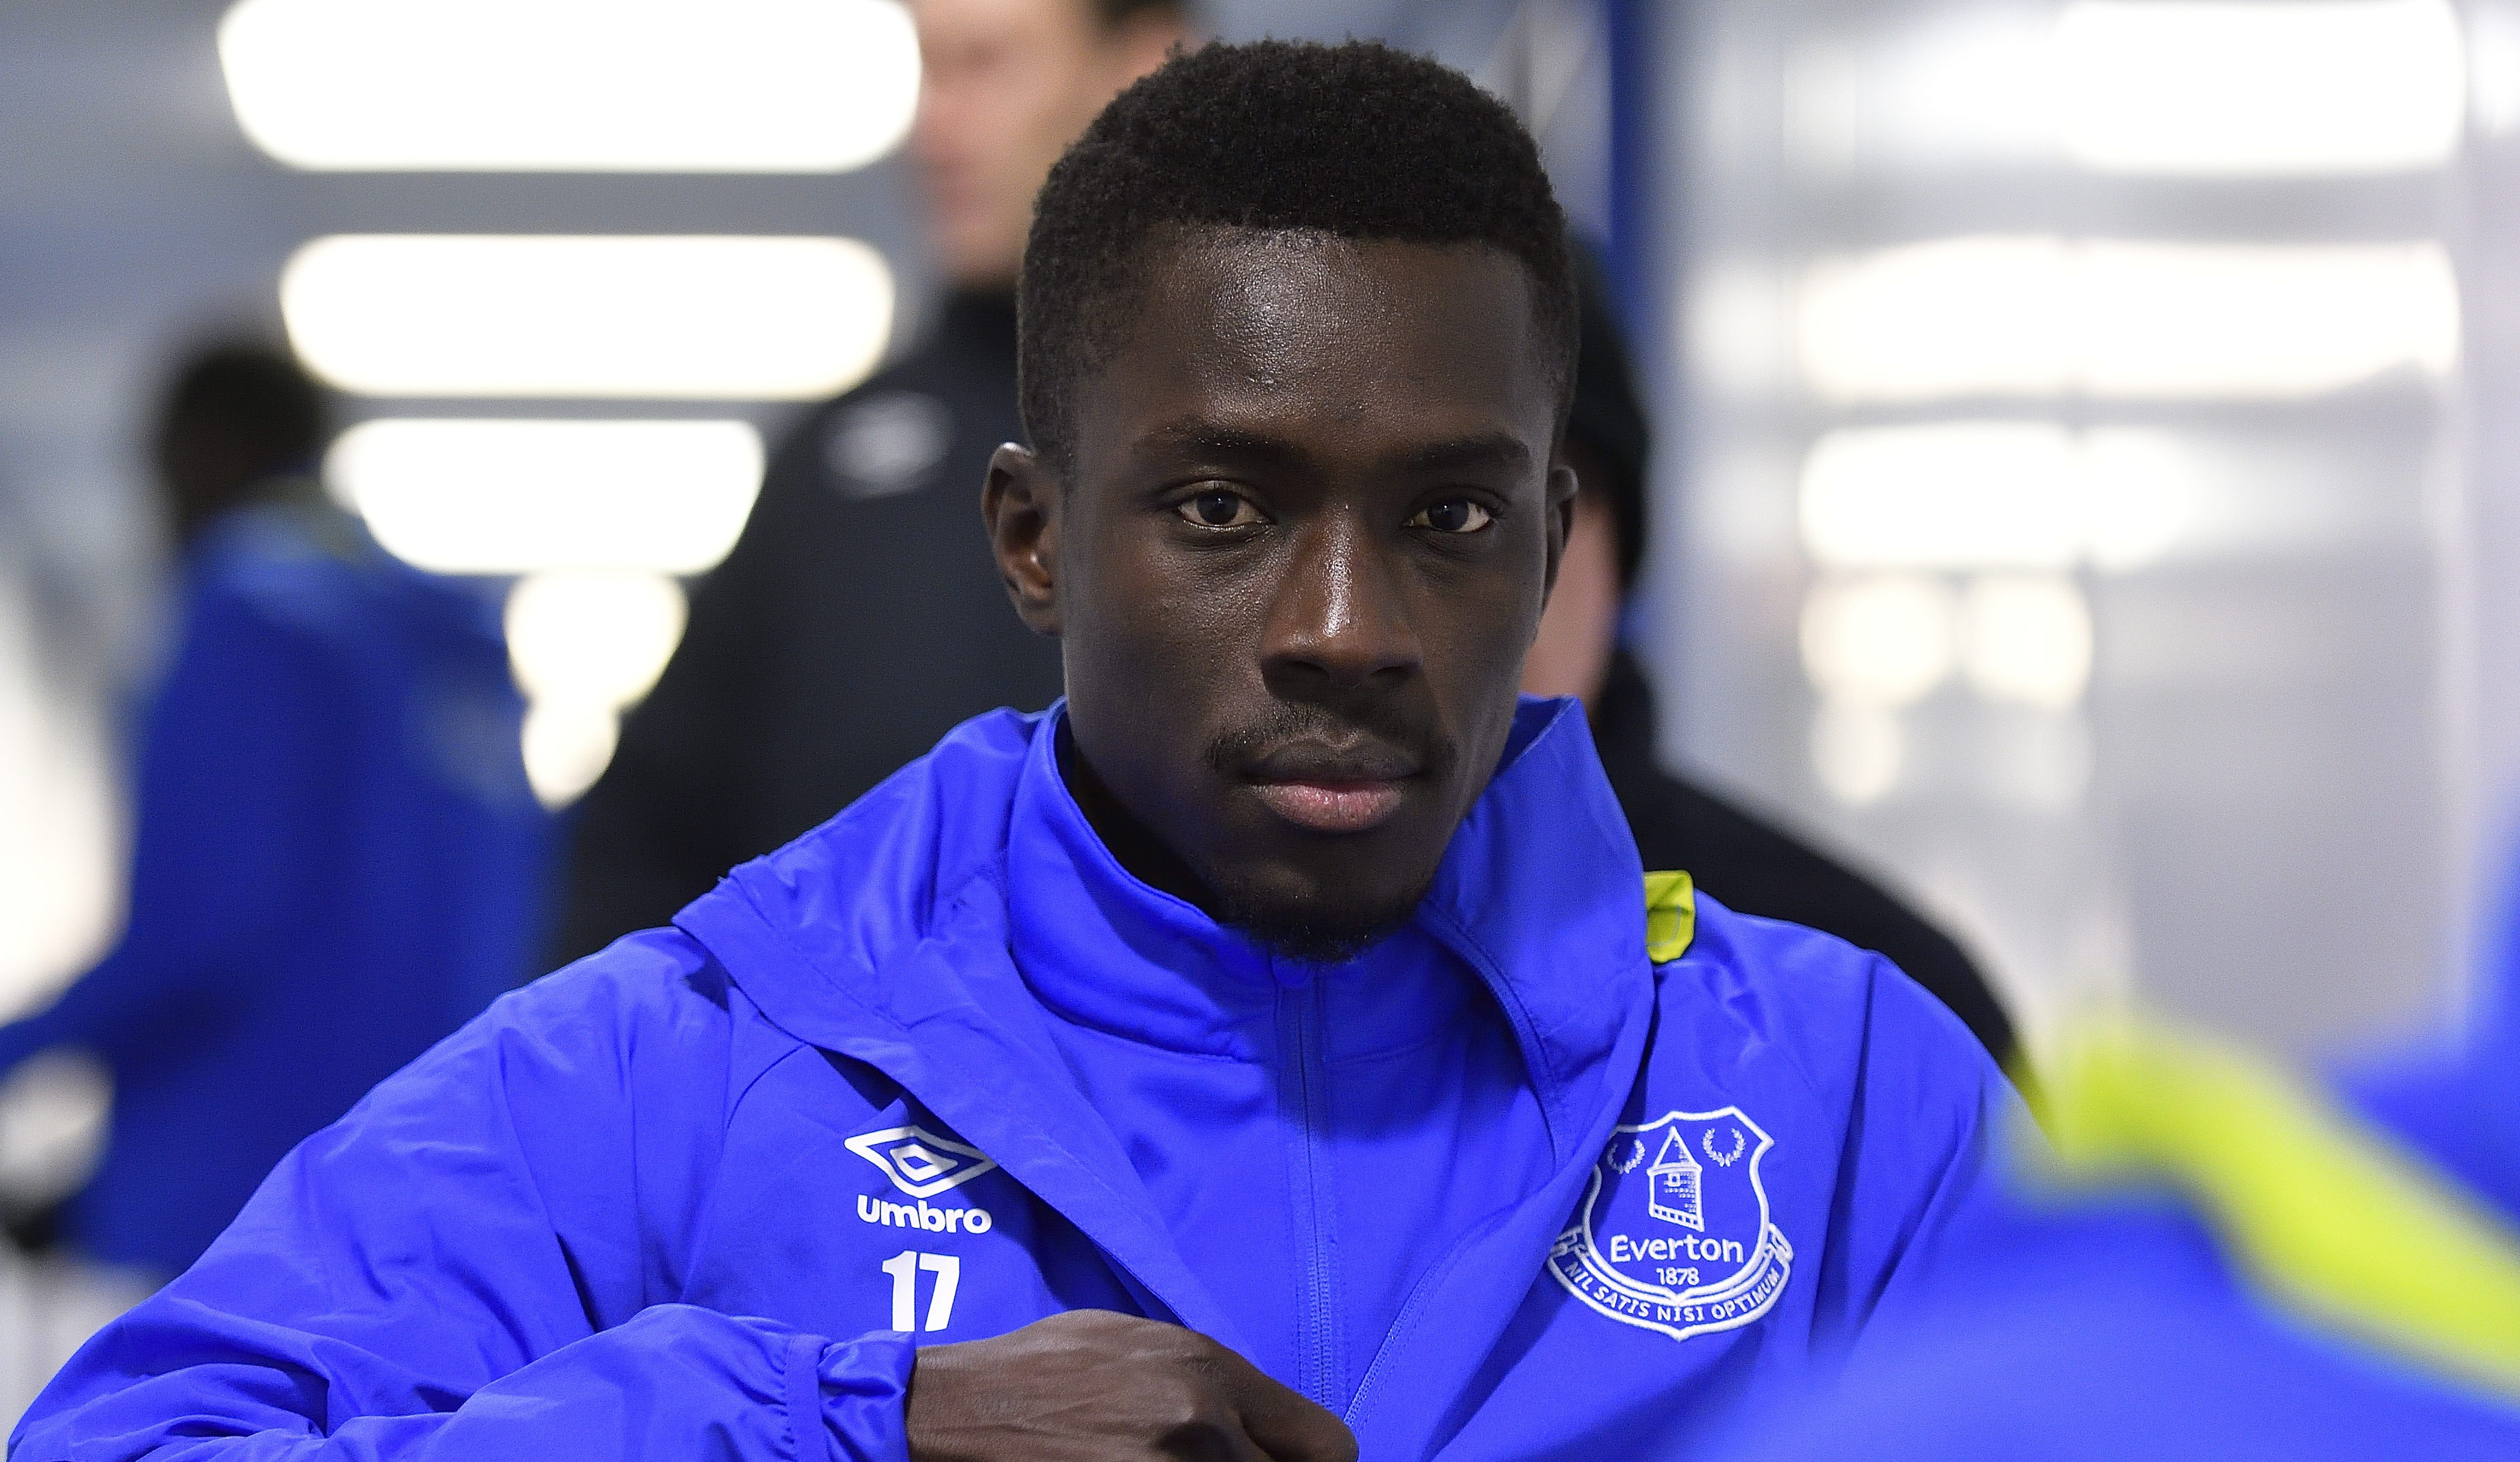 LIVERPOOL, ENGLAND - DECEMBER 4: Idrissa Gueye of Everton before the Barclays Premier League match between Everton and Manchester United at Goodison Park on December 4, 2016 in Liverpool, England. (Photo by Tony McArdle/Everton FC via Getty Images)